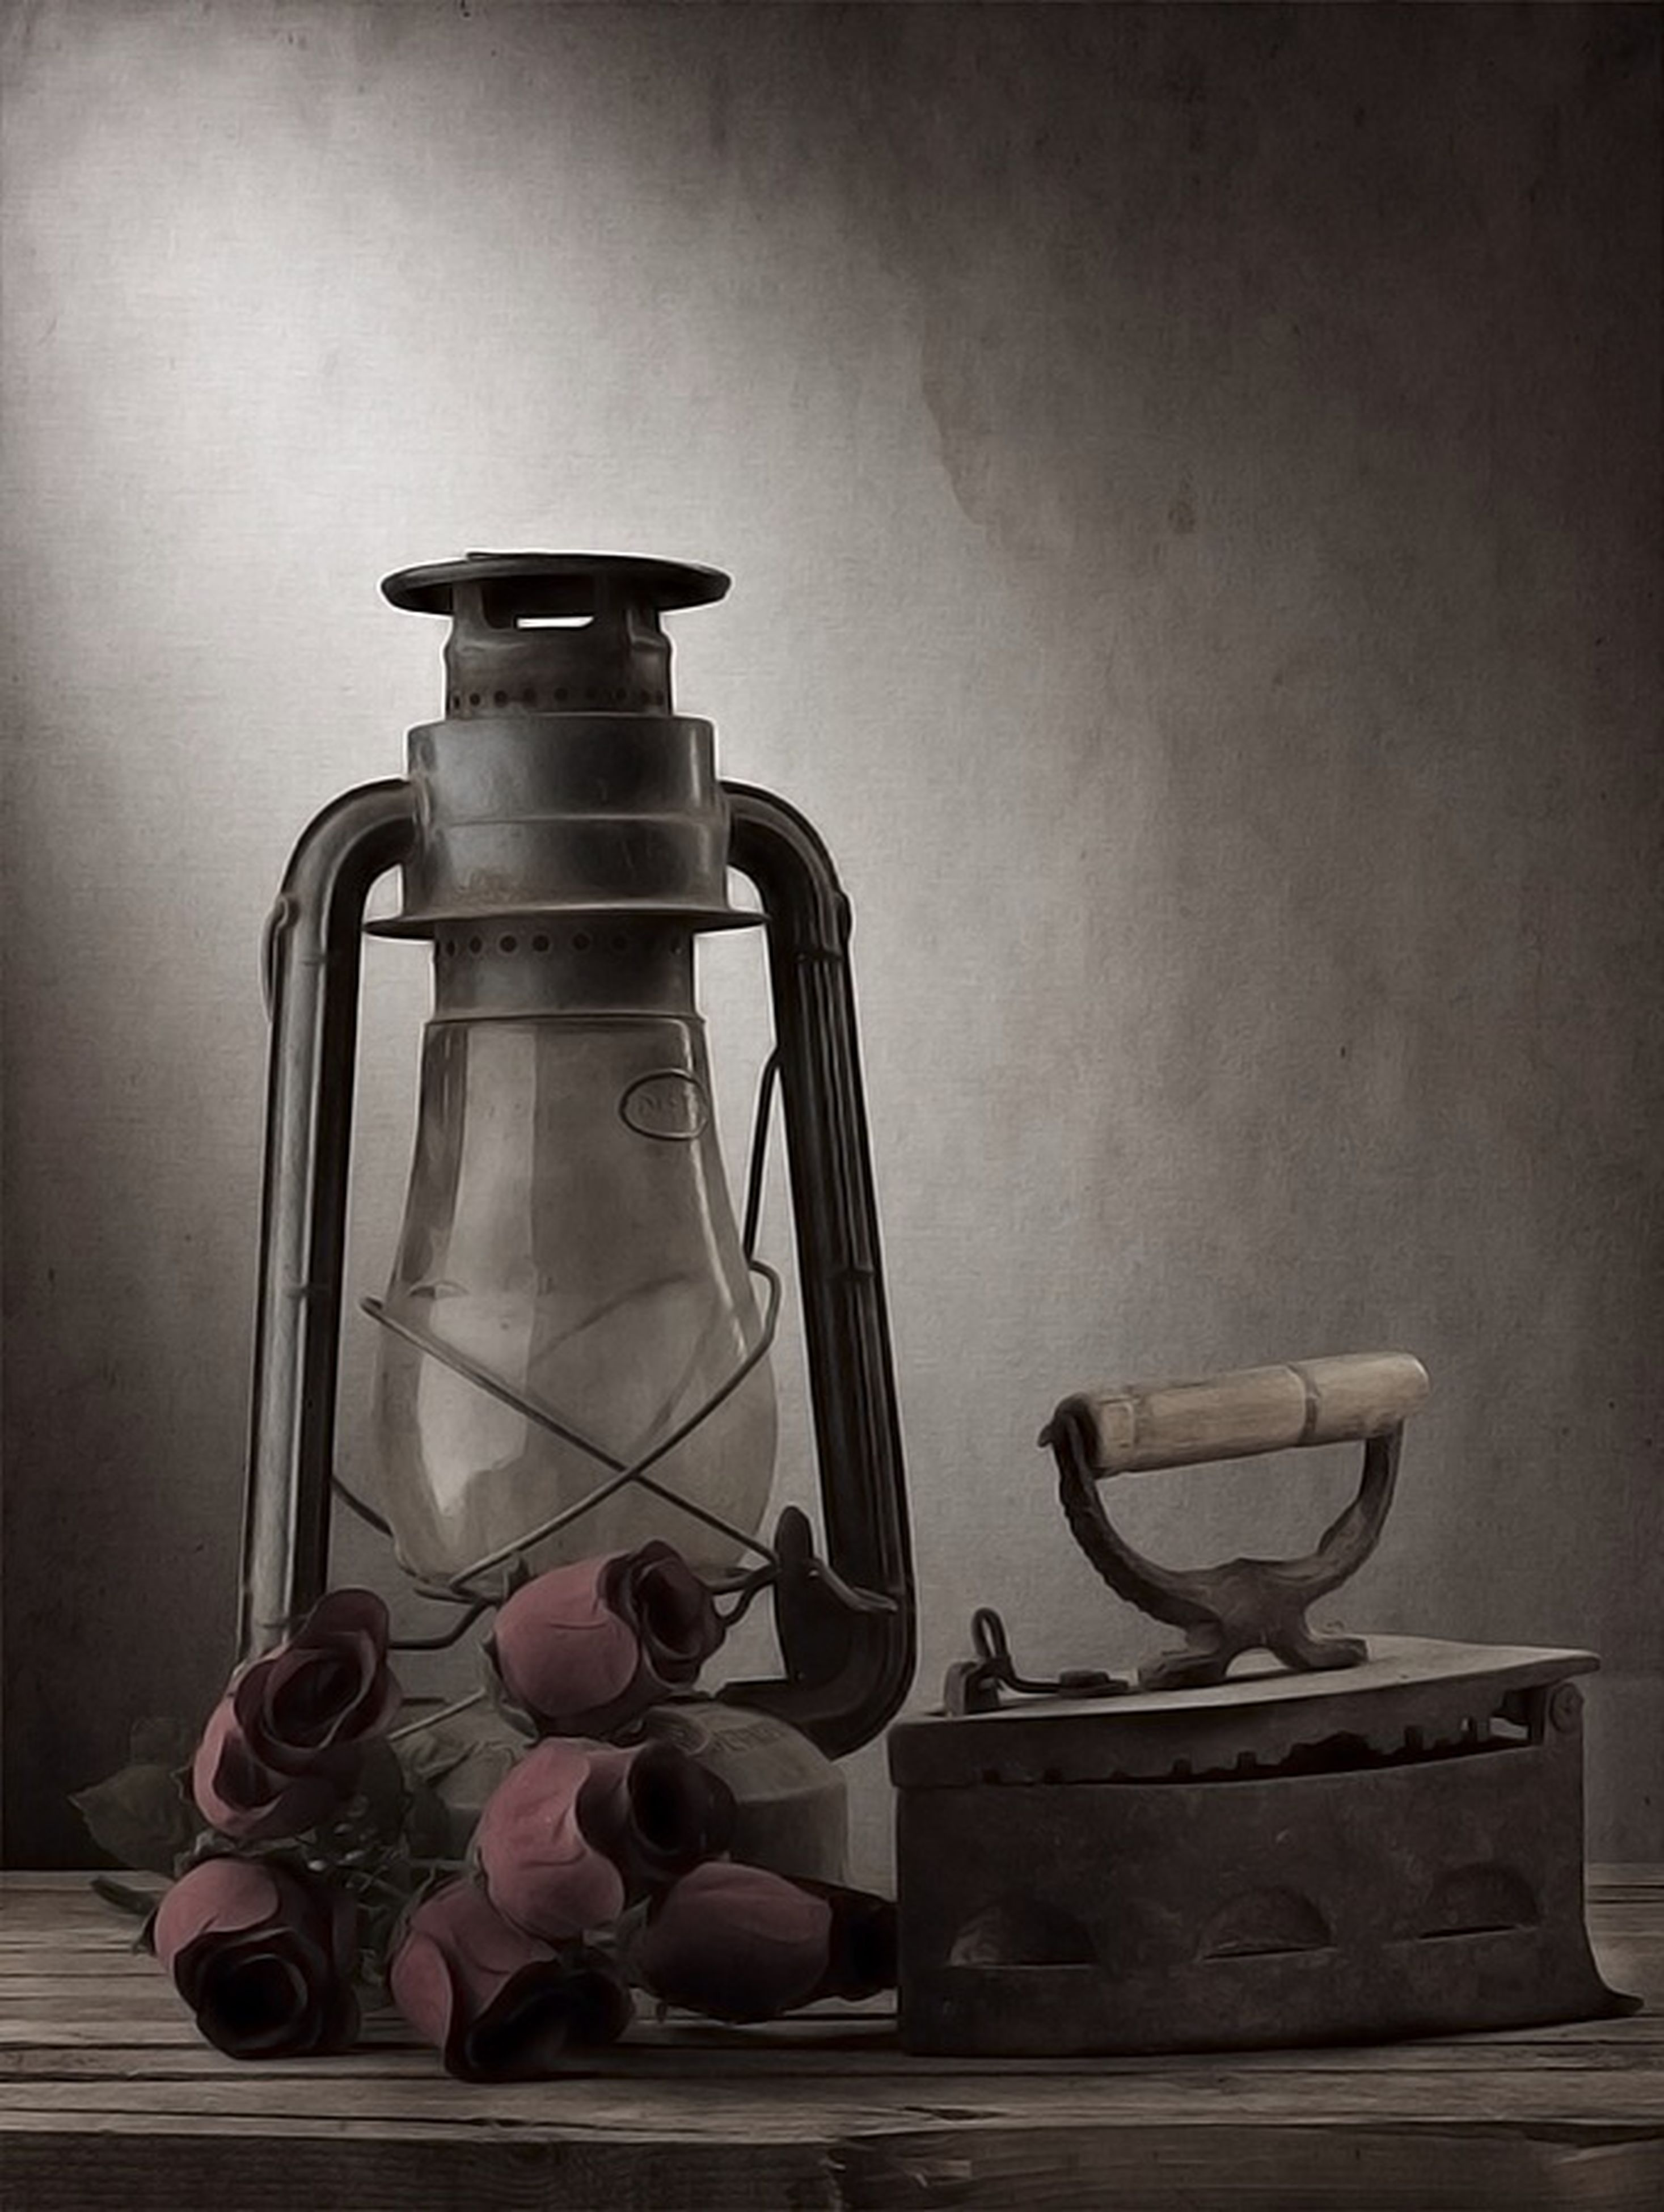 indoors, still life, table, wall - building feature, no people, home interior, built structure, metal, absence, old-fashioned, close-up, container, chair, architecture, day, wood - material, sunlight, copy space, retro styled, lighting equipment